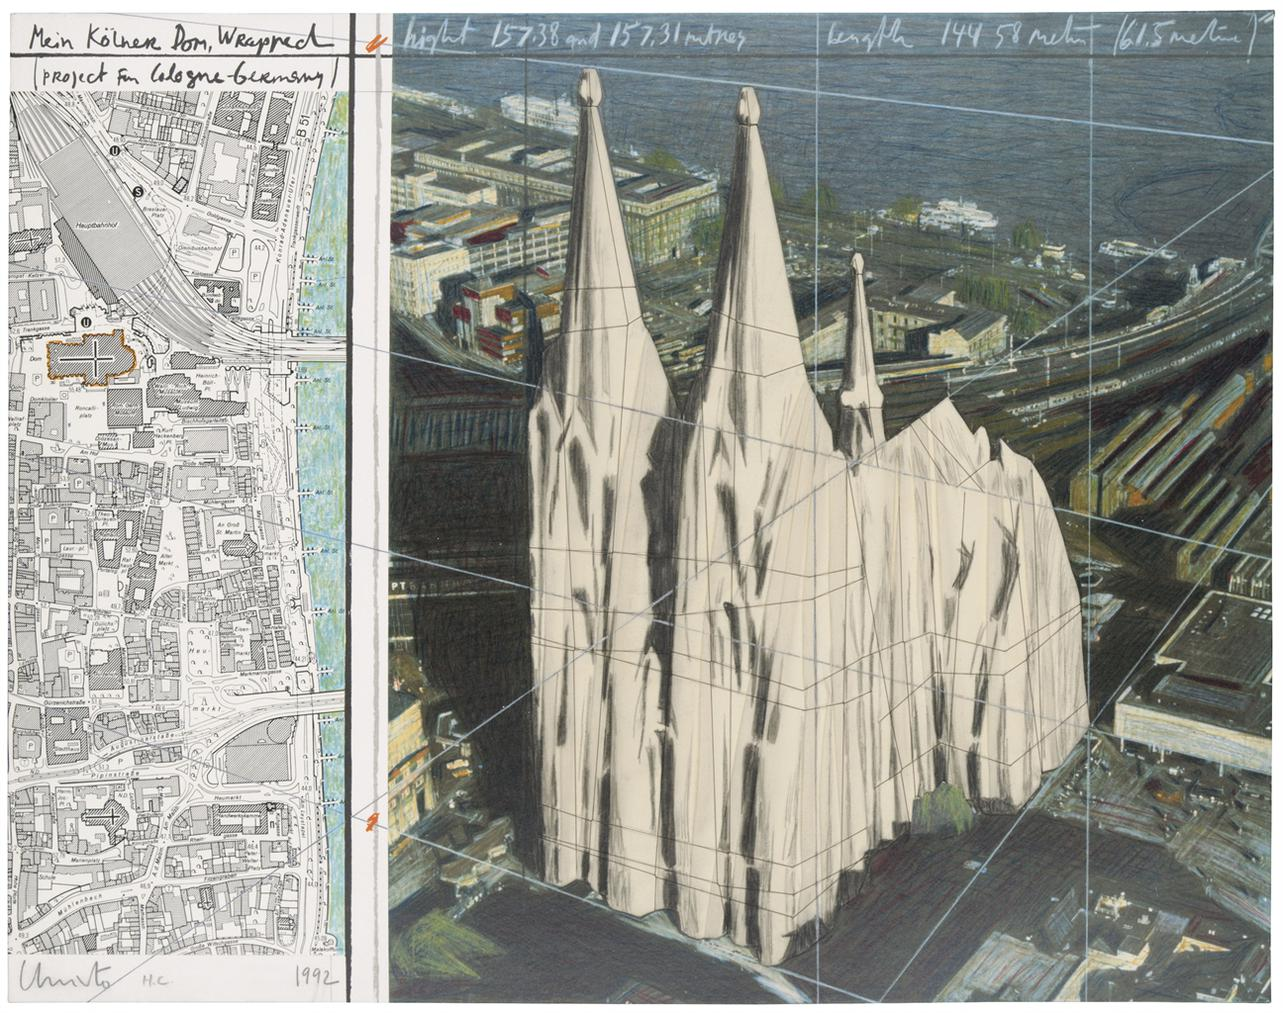 Christo and Jeanne-Claude-Mein Kolner Dom, Wrapped (Project For Cologne - Germany)-1992